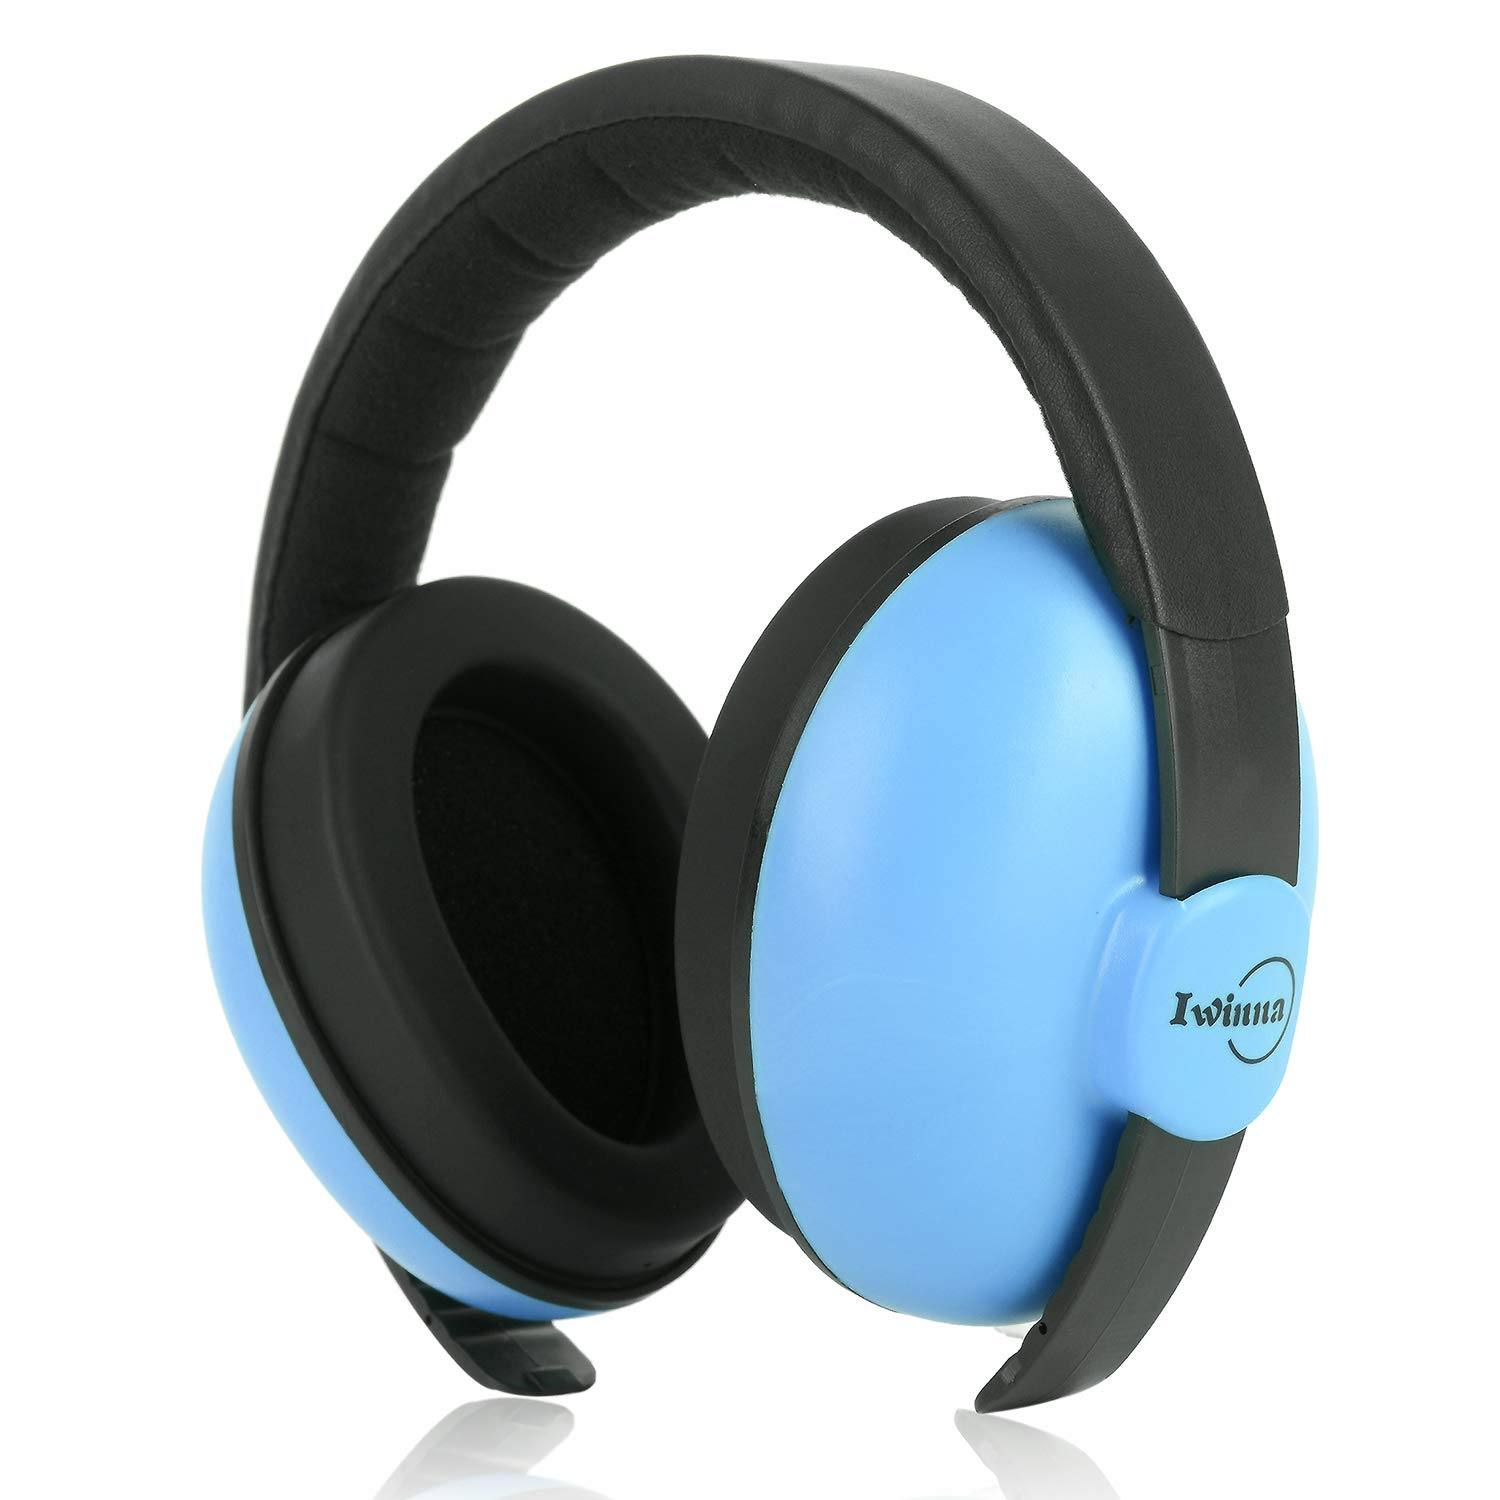 Baby Headphones Safety Ear Muffs Noise Reduction for Newborn Infant Autism Kids Toddlers Sound Cancelling Headphones for Sleeping Studying Airplane Concerts Movie Theater Fireworks, Blue by ILOVEUS (Image #6)